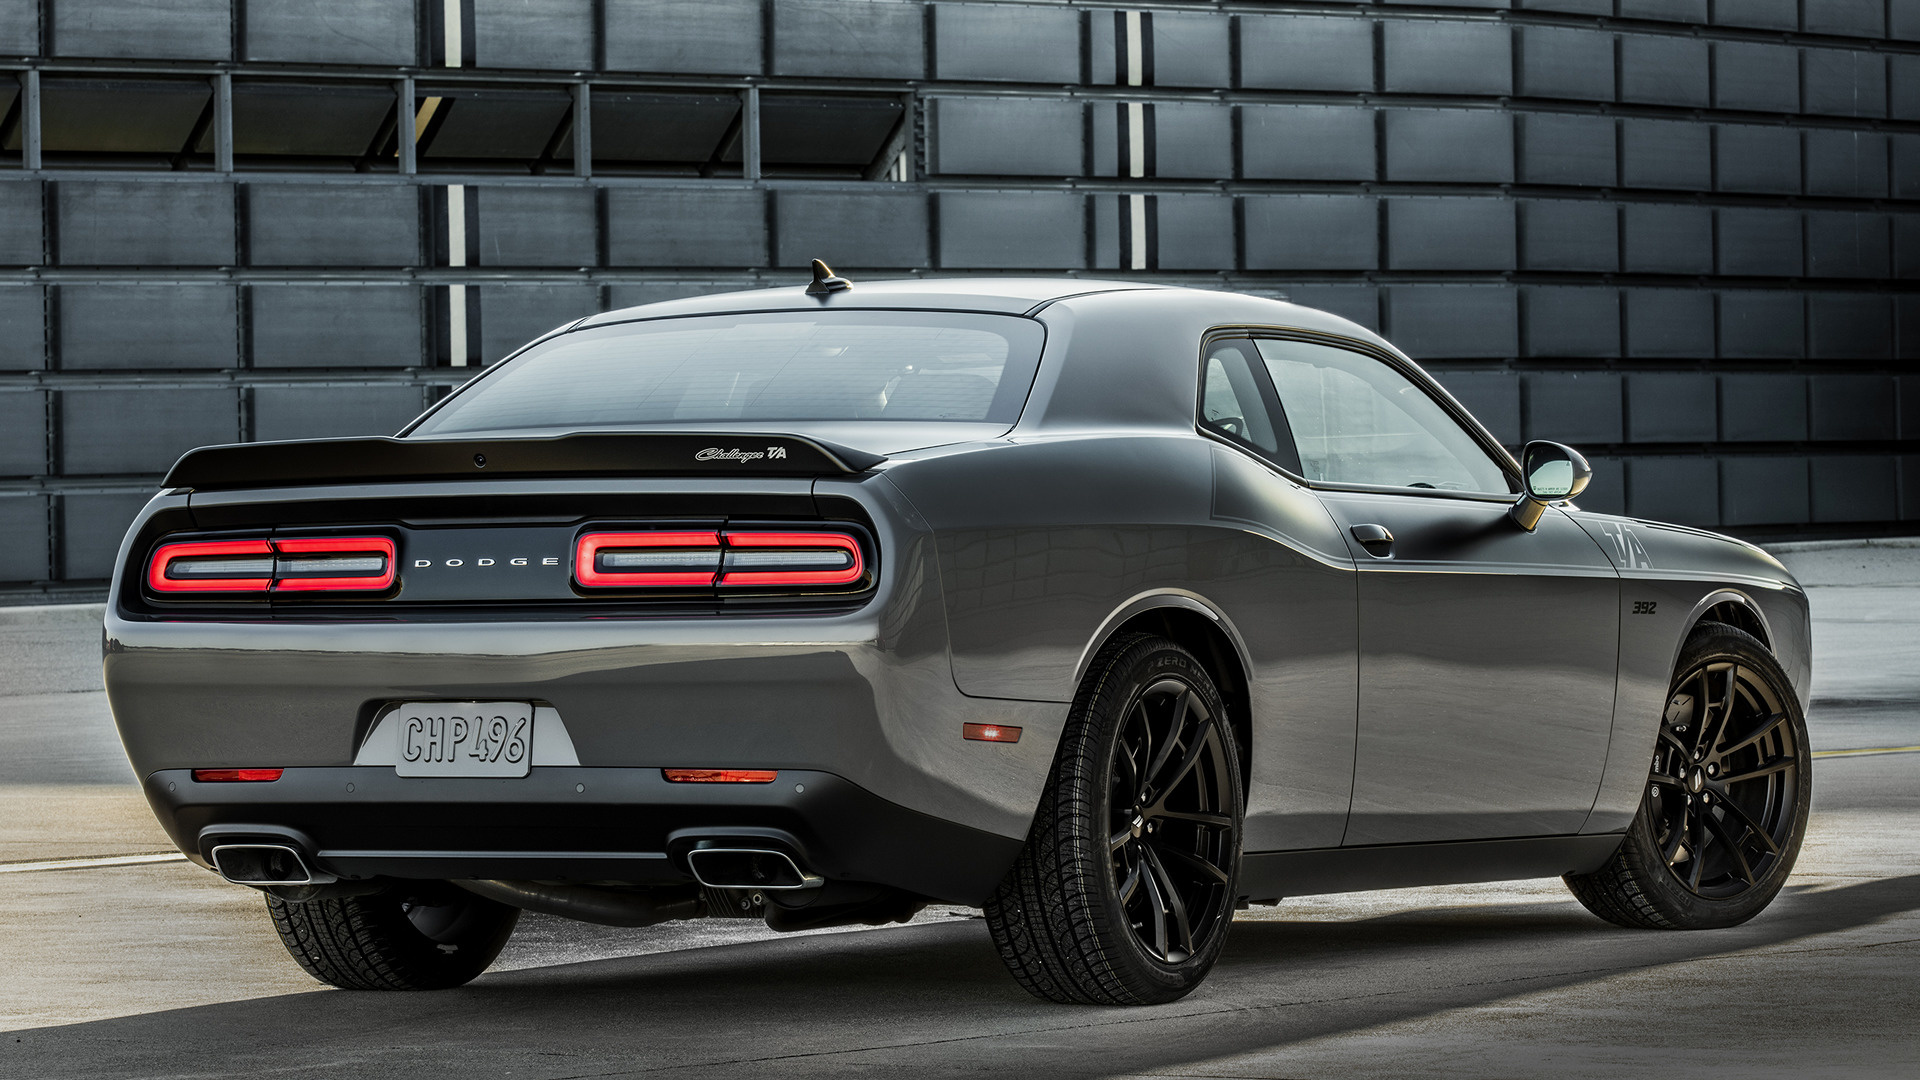 2018 Dodge Challenger >> Dodge Challenger T/A 392 (2017) Wallpapers and HD Images ...